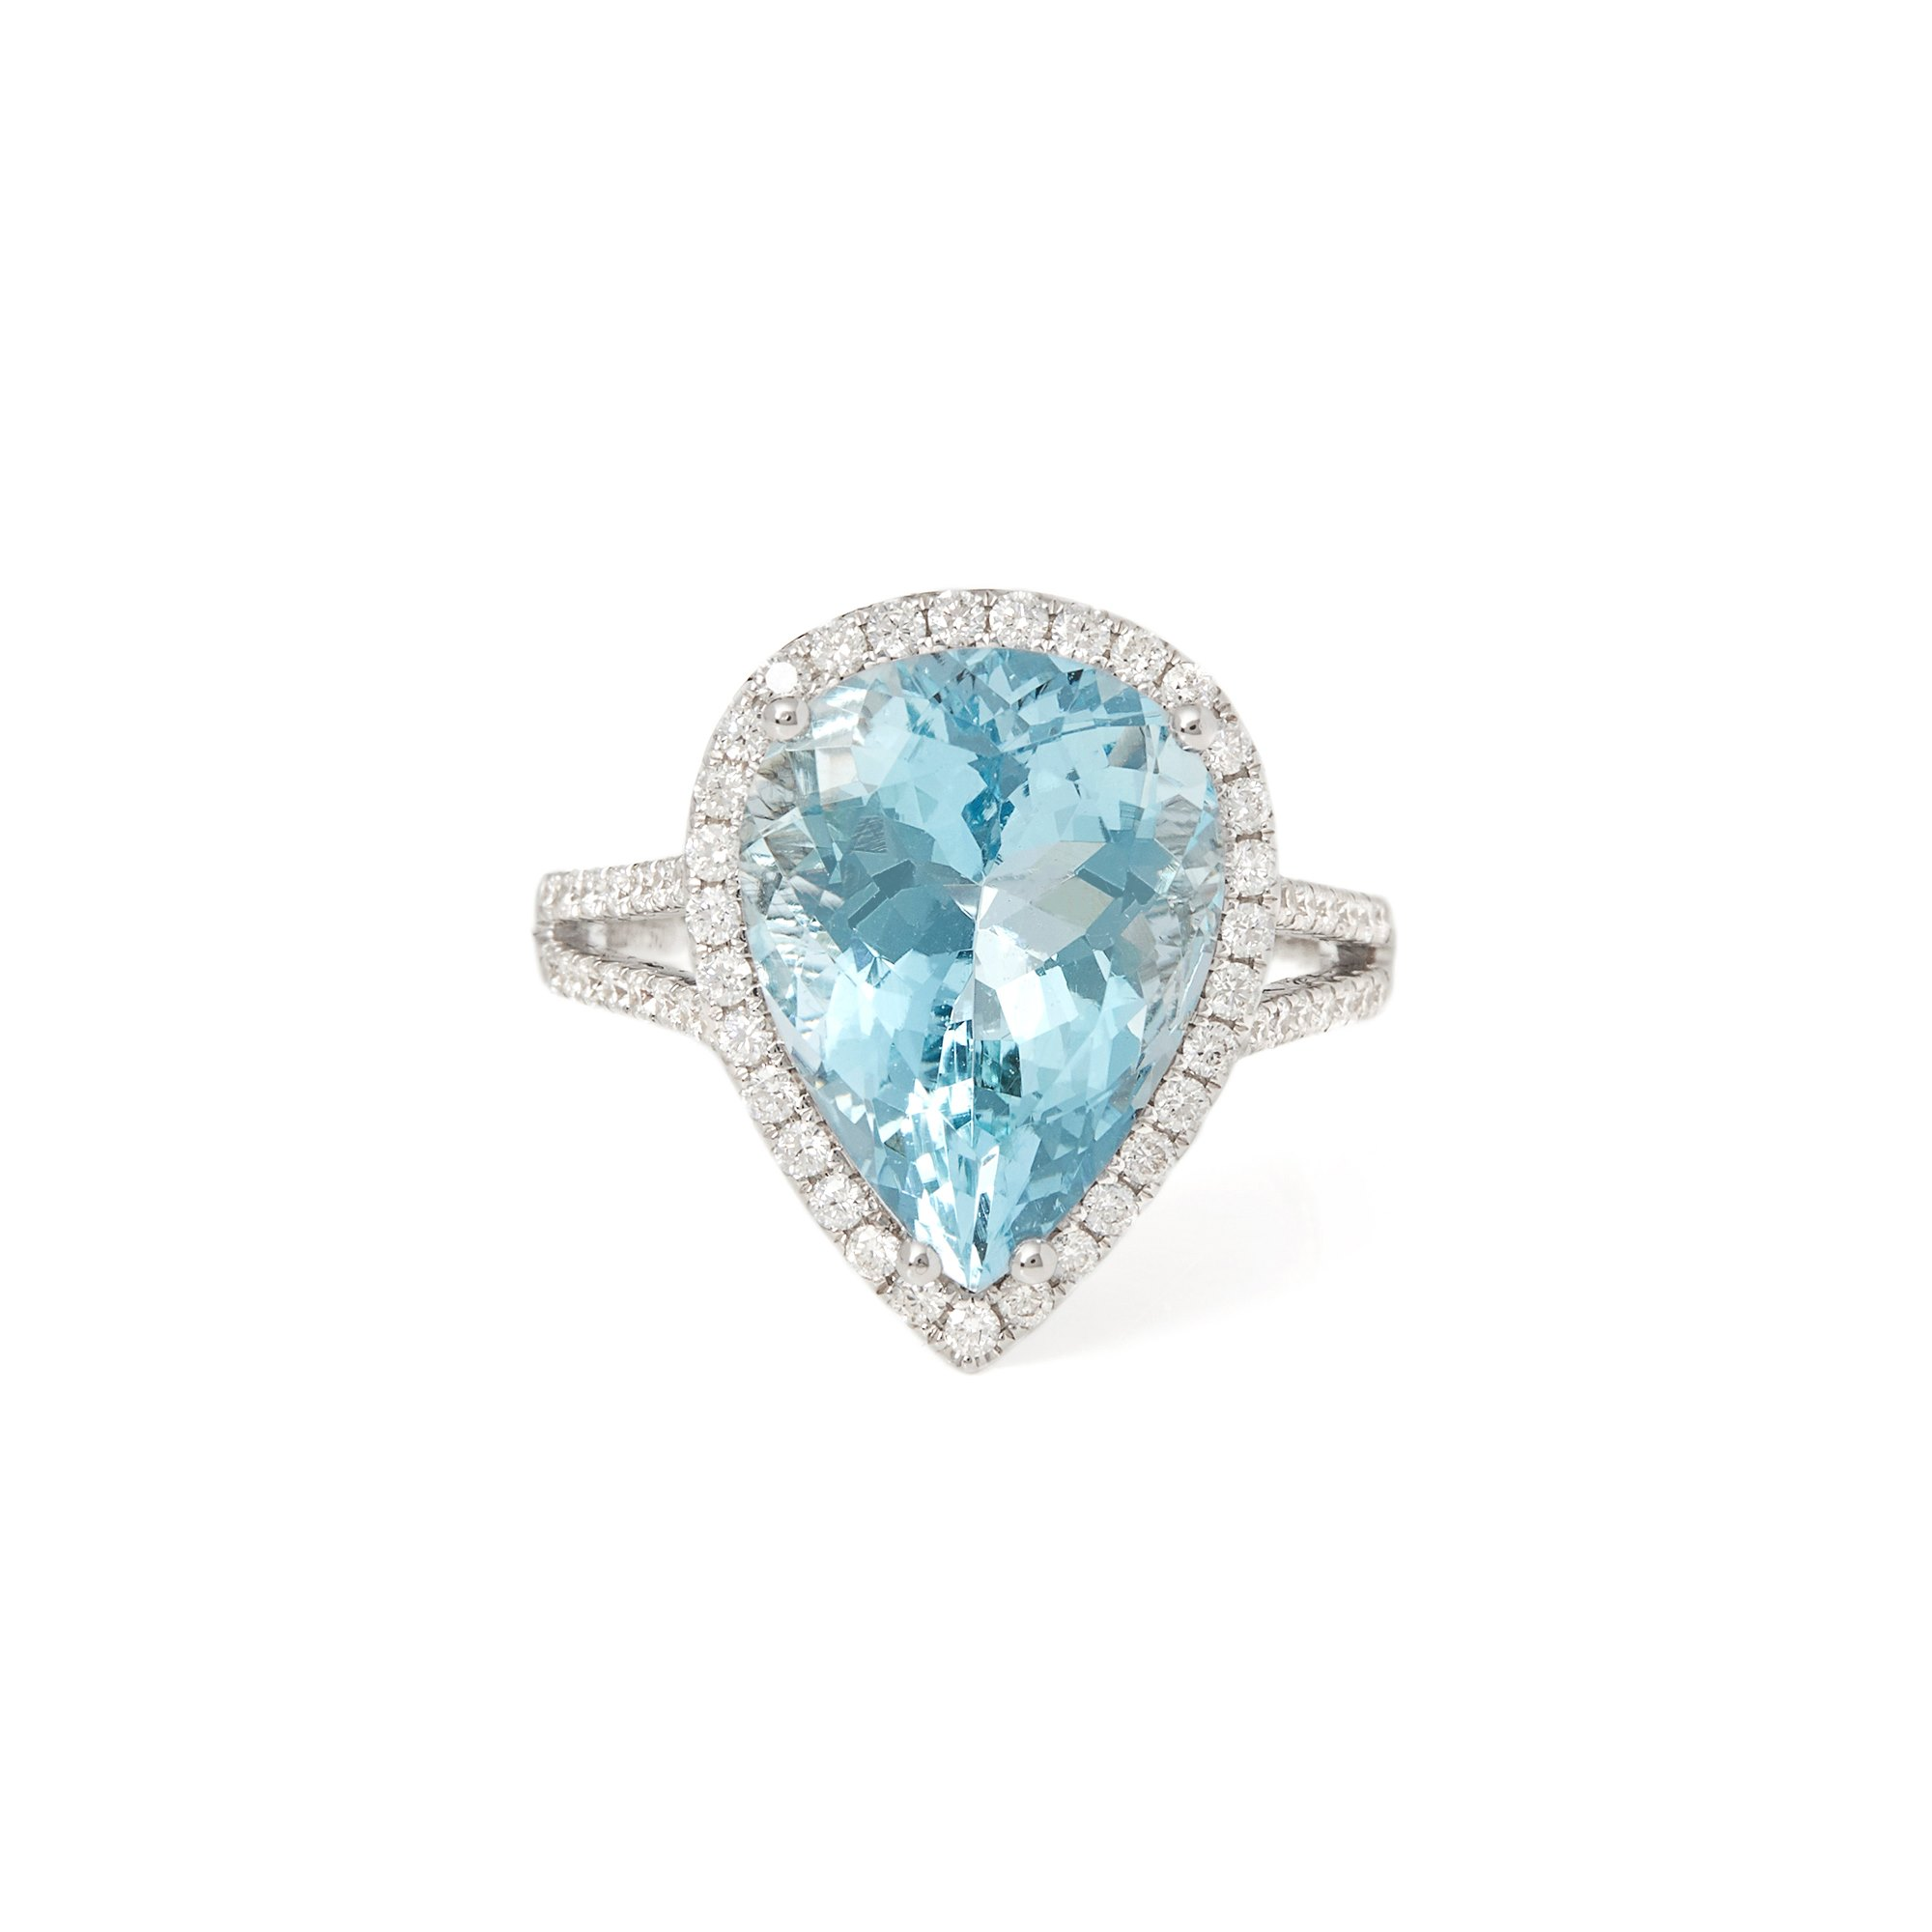 David Jerome Certified 6.66ct Untreated Brazillian Pear Cut Aquamarine and Diamond Ring